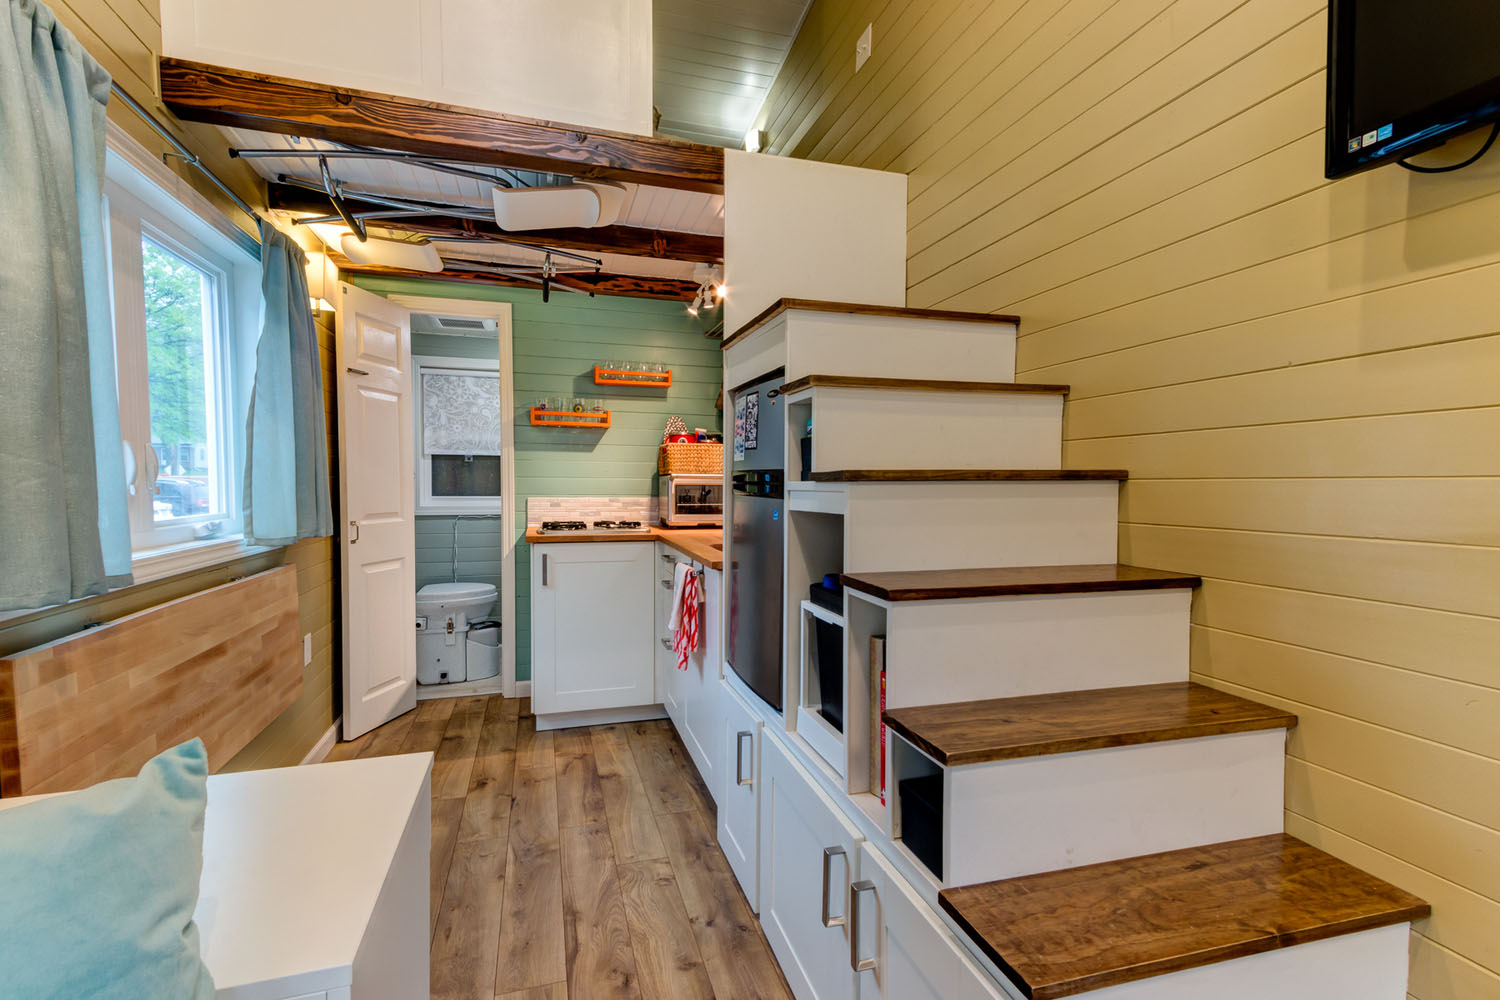 tiny house interior with staircase - Tiny House Interior Design Ideas